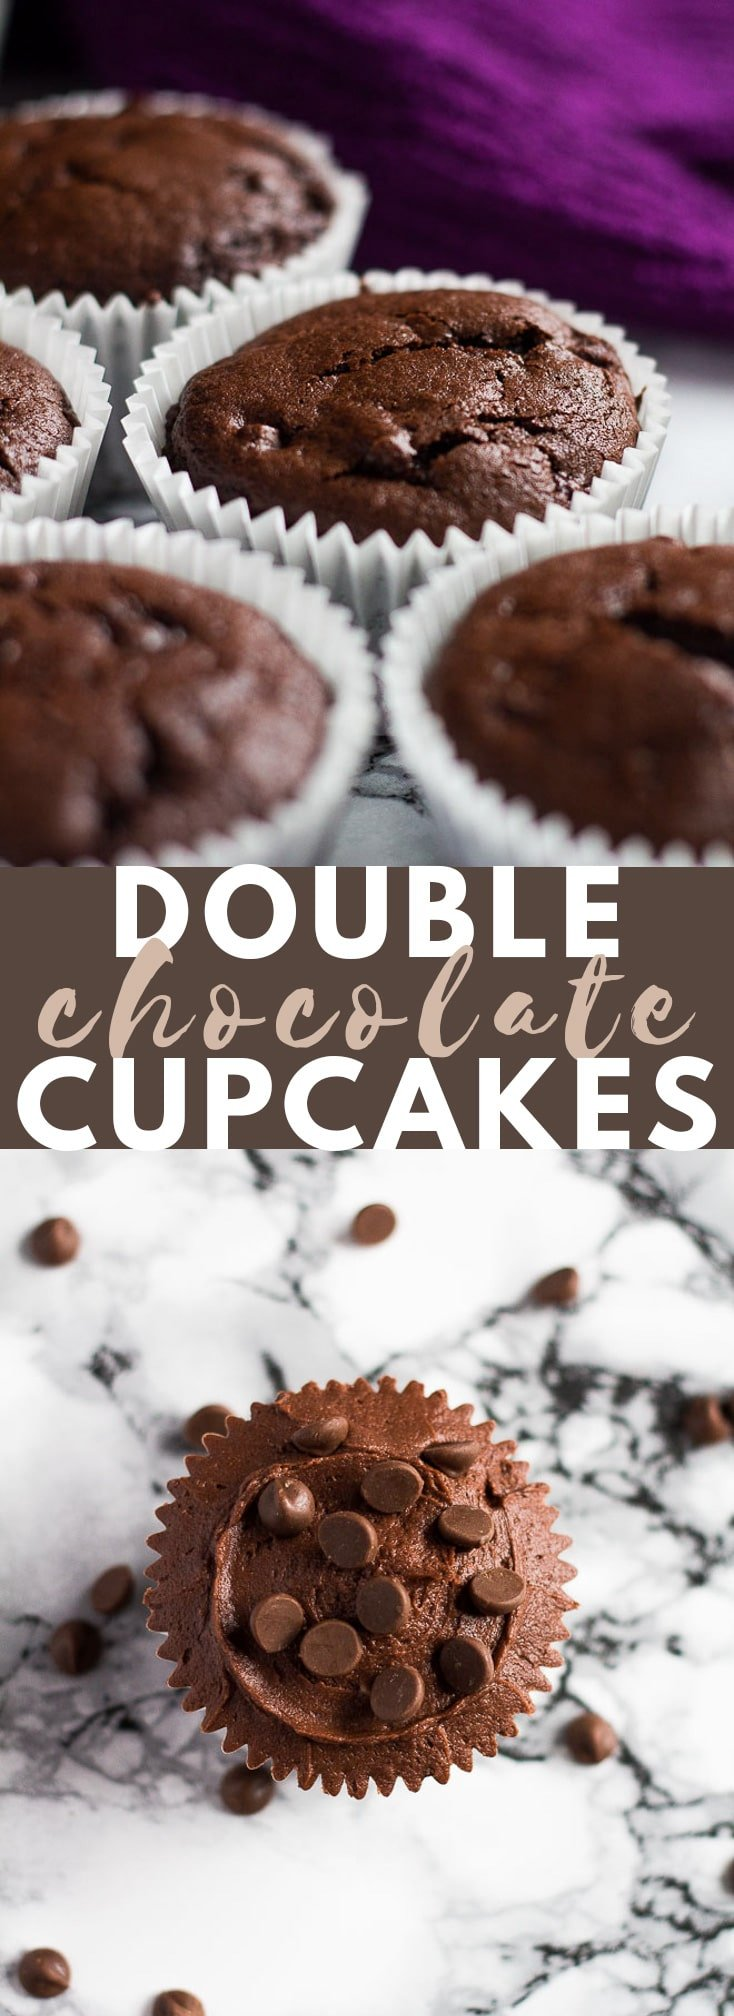 Double Chocolate Cupcakes – Deliciously moist and fluffy chocolate cupcakes stuffed with chocolate chips, and topped with a chocolate buttercream frosting!